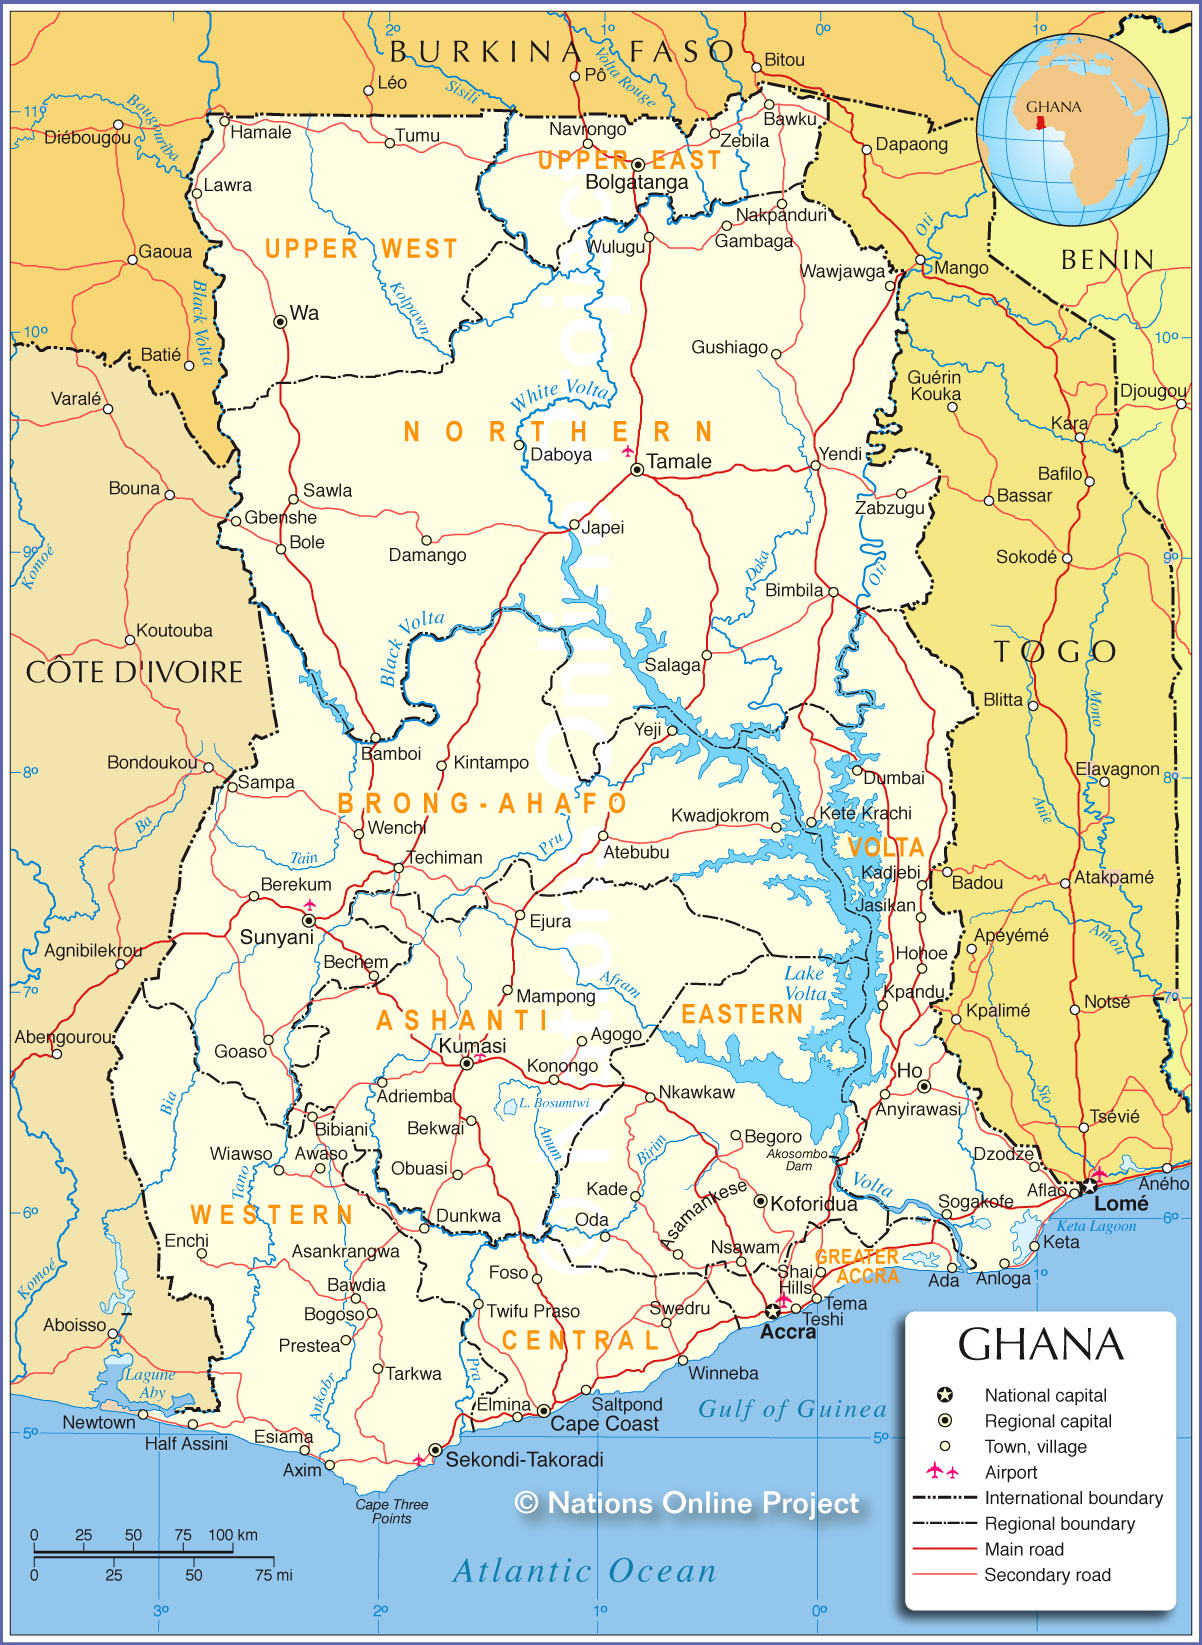 Ghana Country Profile - National Geographic Kids